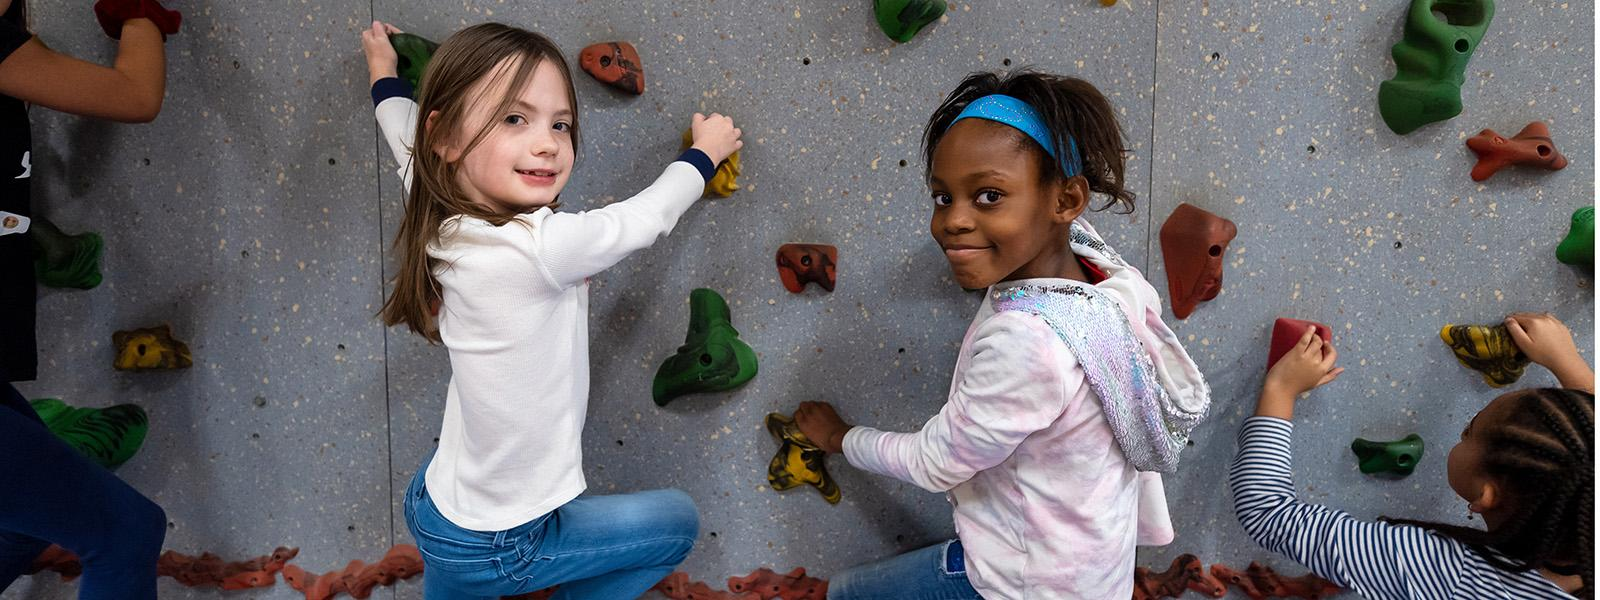 Newington Forest Elementary School students rise to new heights on the school's climbing wall.